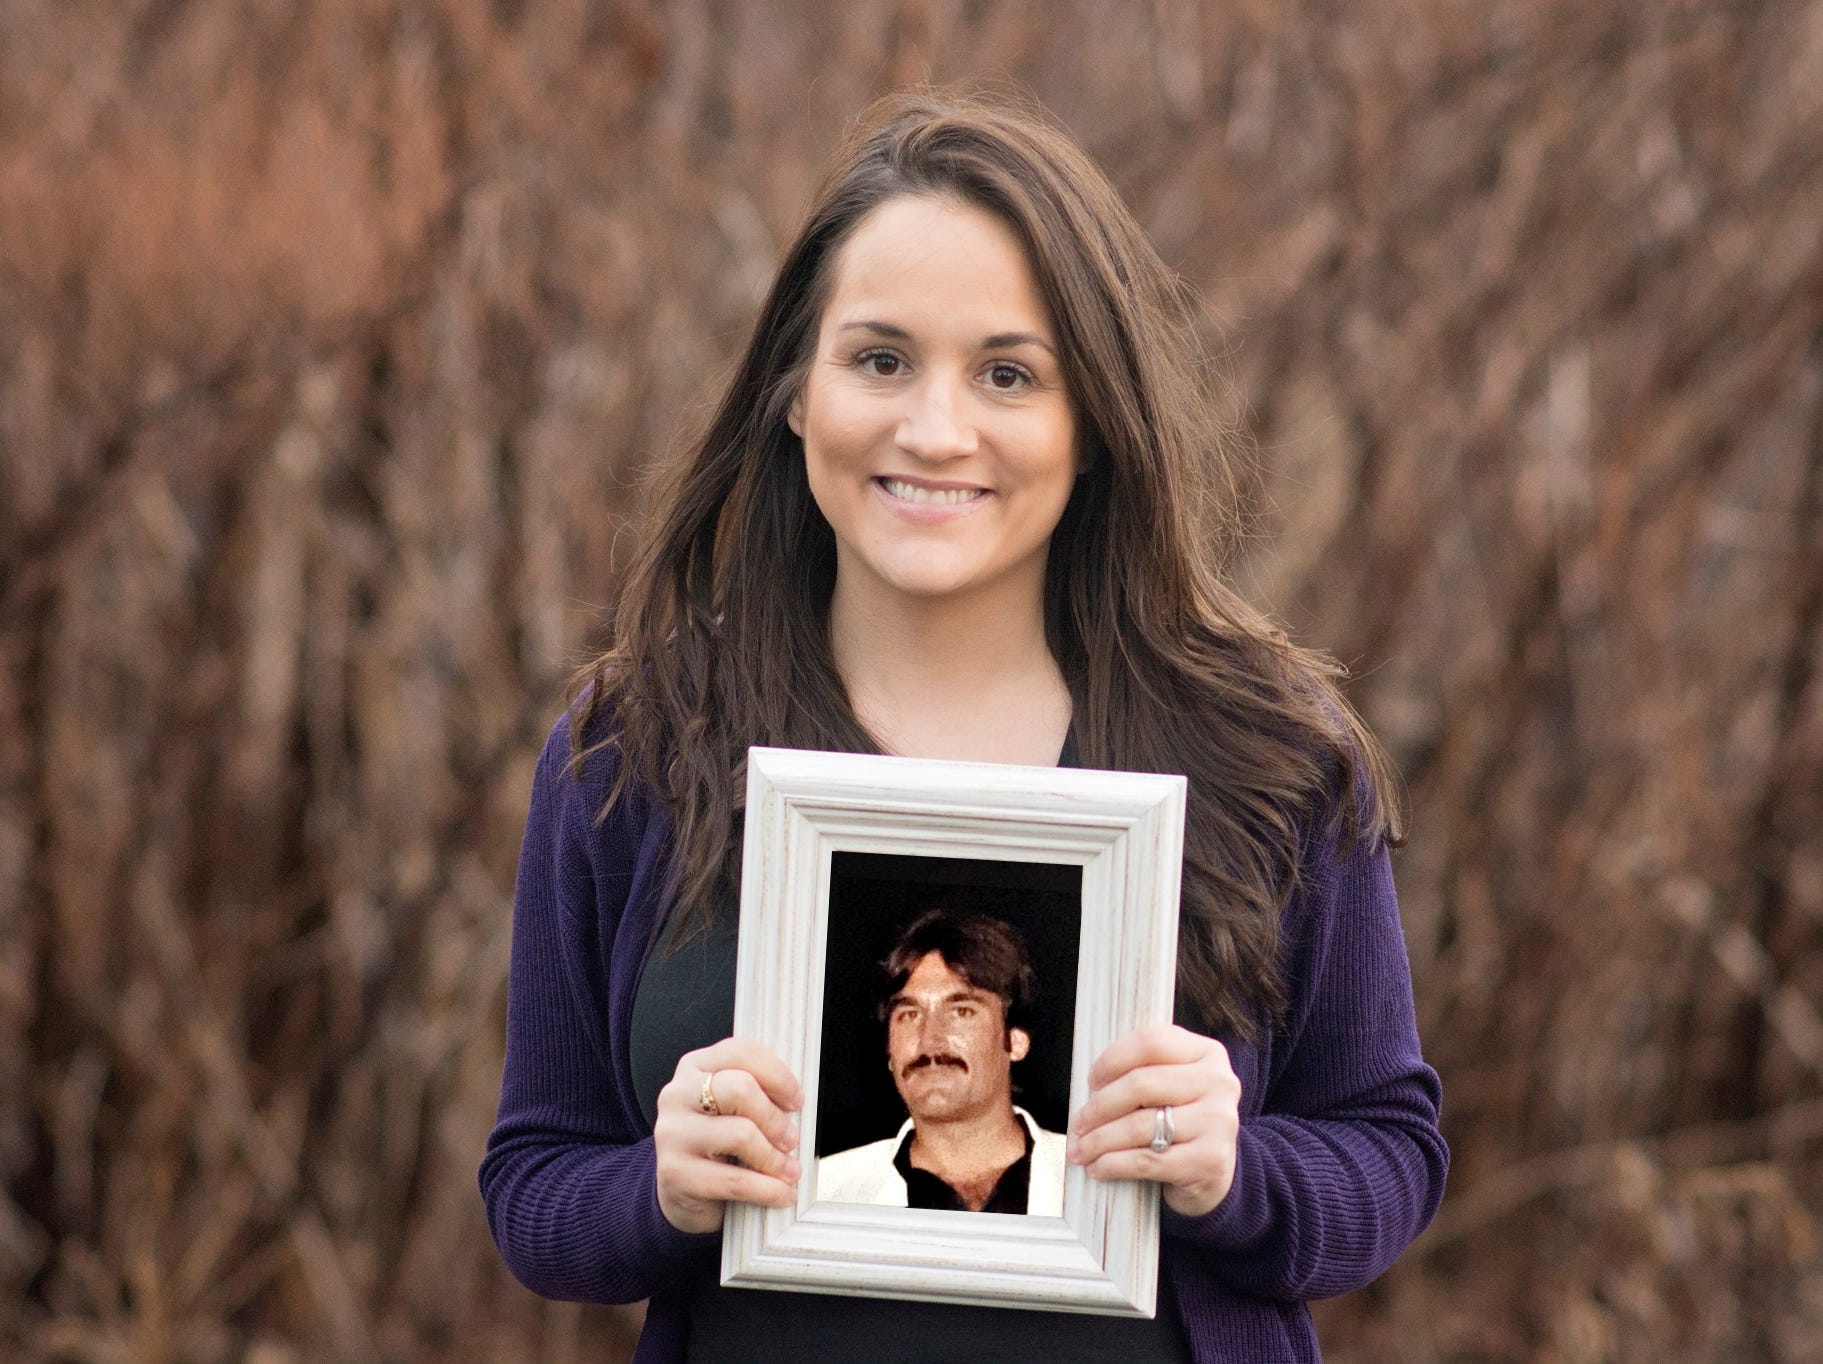 Mindi Prince holds a photo of her father, who died before she was a year old.